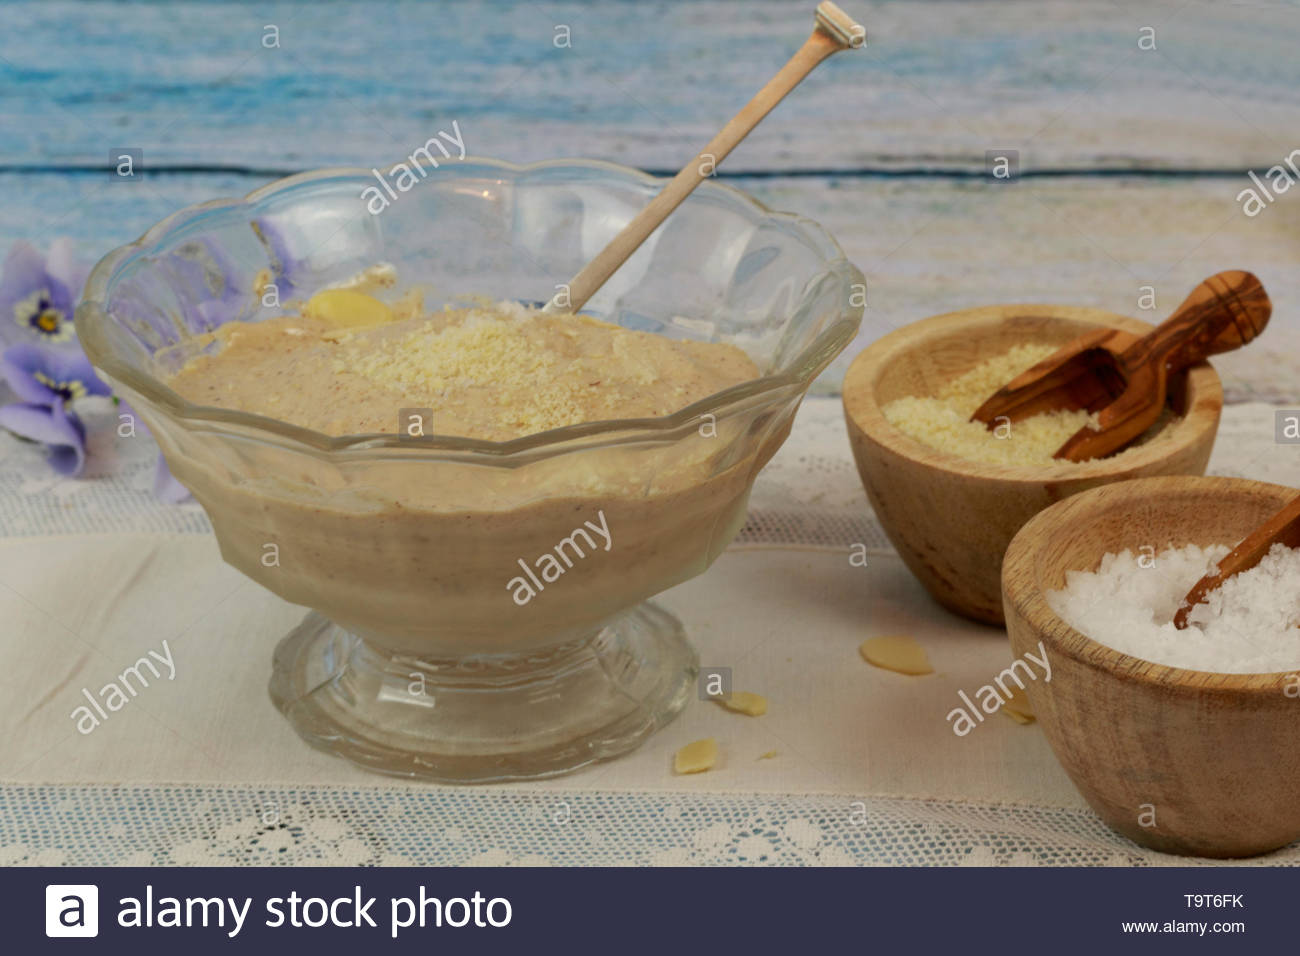 Home made salted almond butter ice cream. - Stock Image